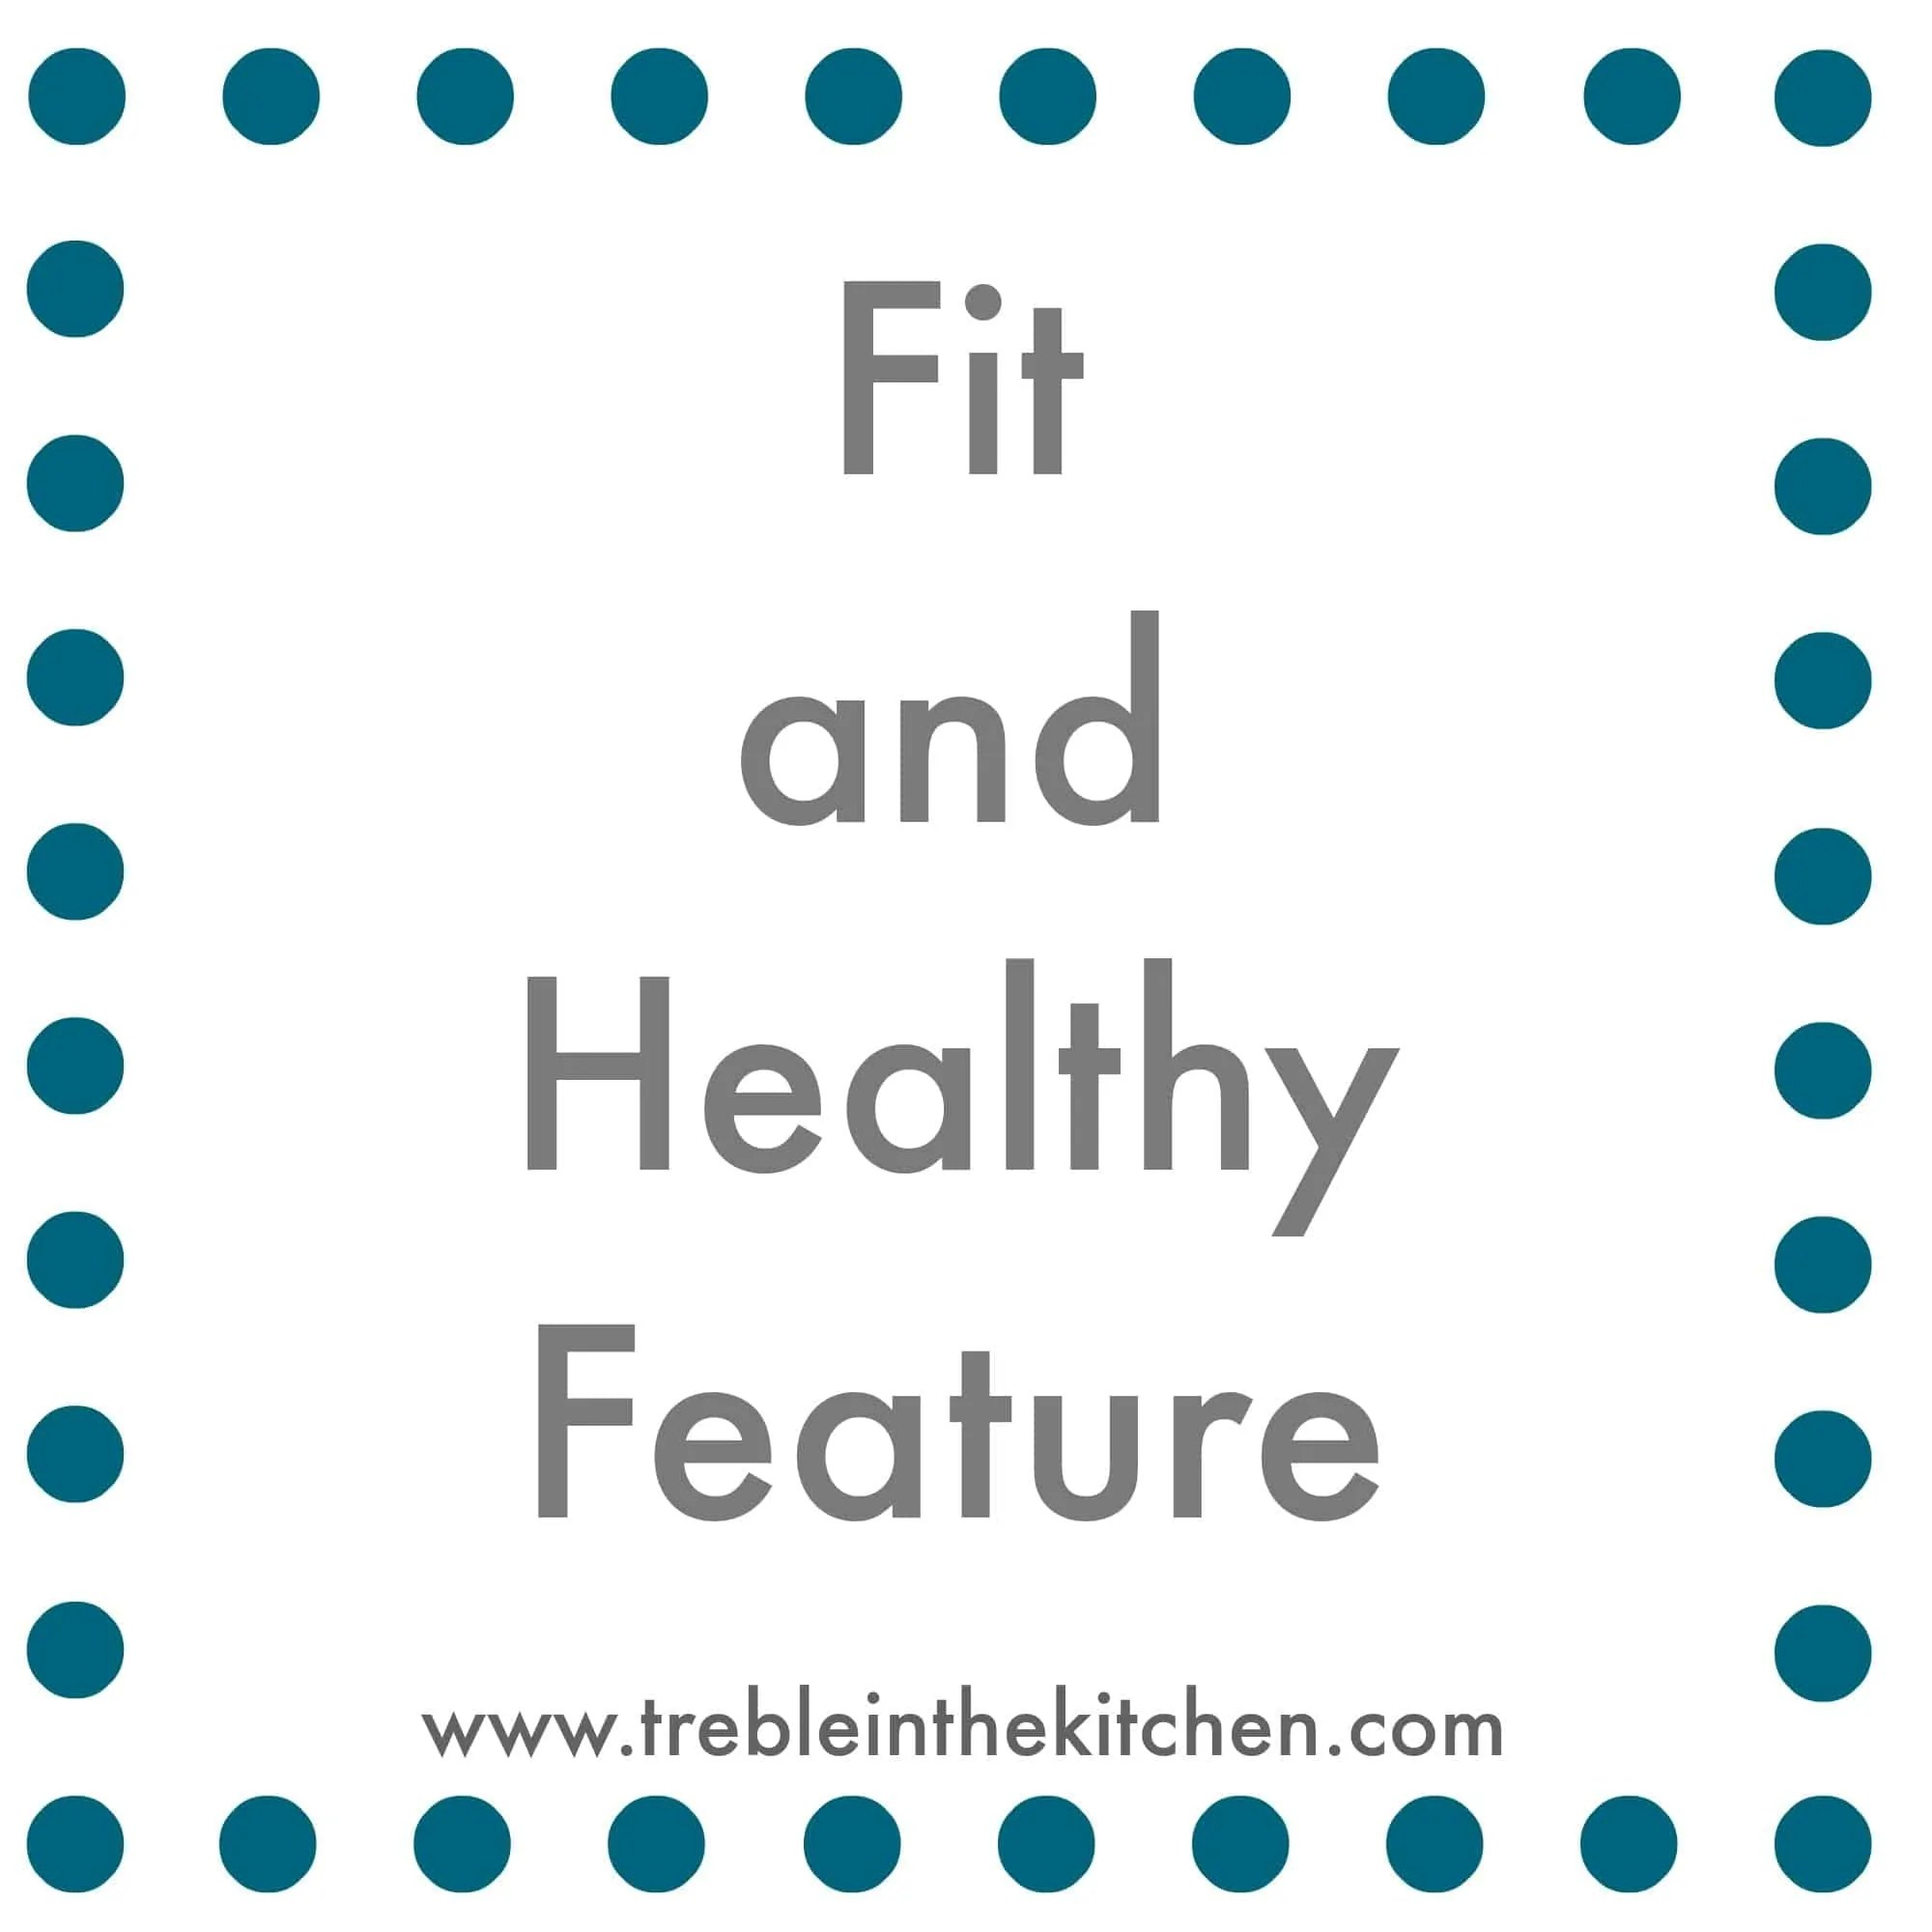 Fit and Healthy Feature via Treble in the Kitchen